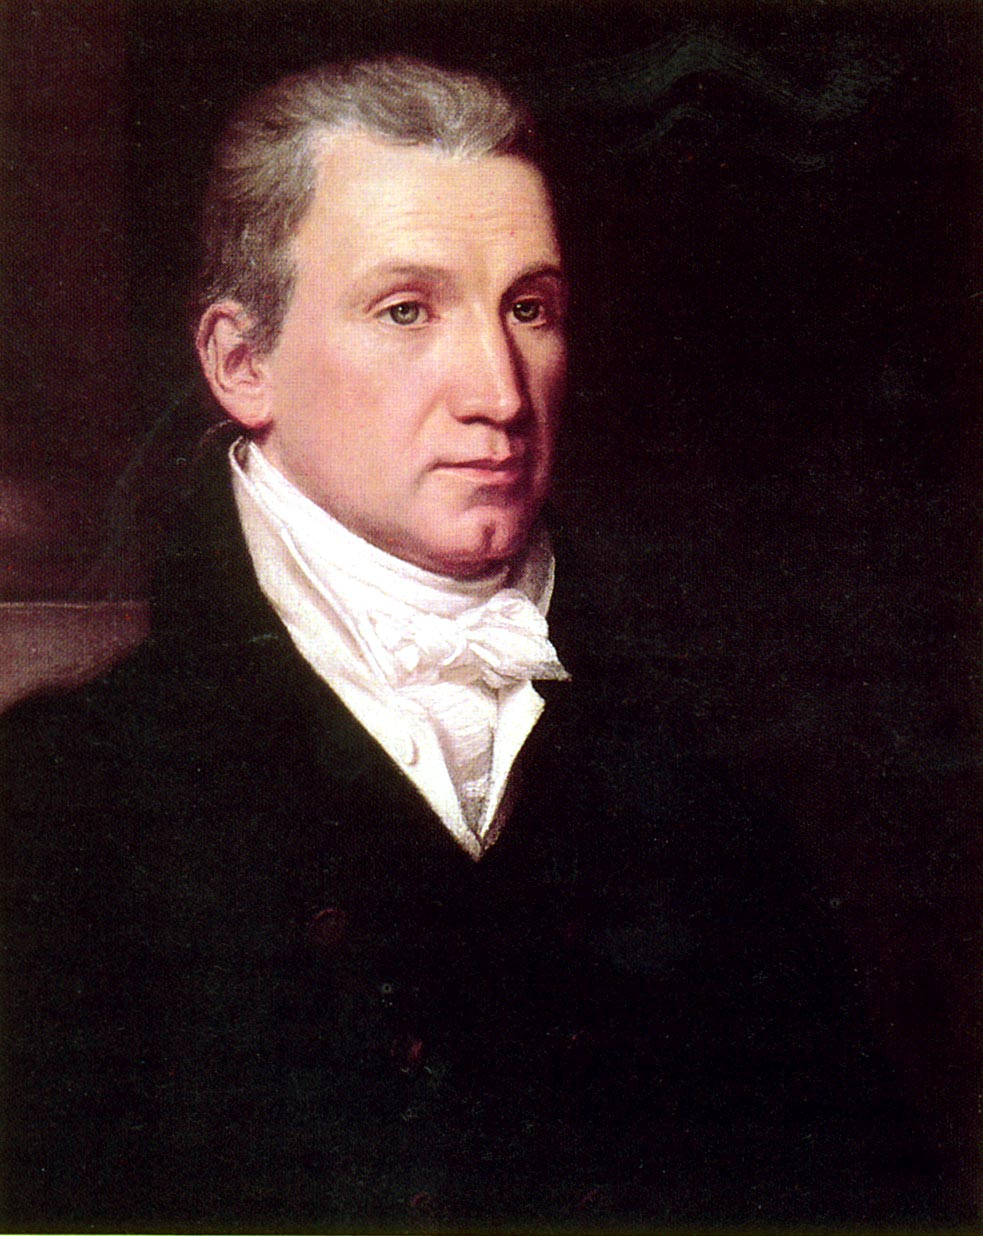 http://upload.wikimedia.org/wikipedia/commons/6/6c/James_Monroe_02.jpg